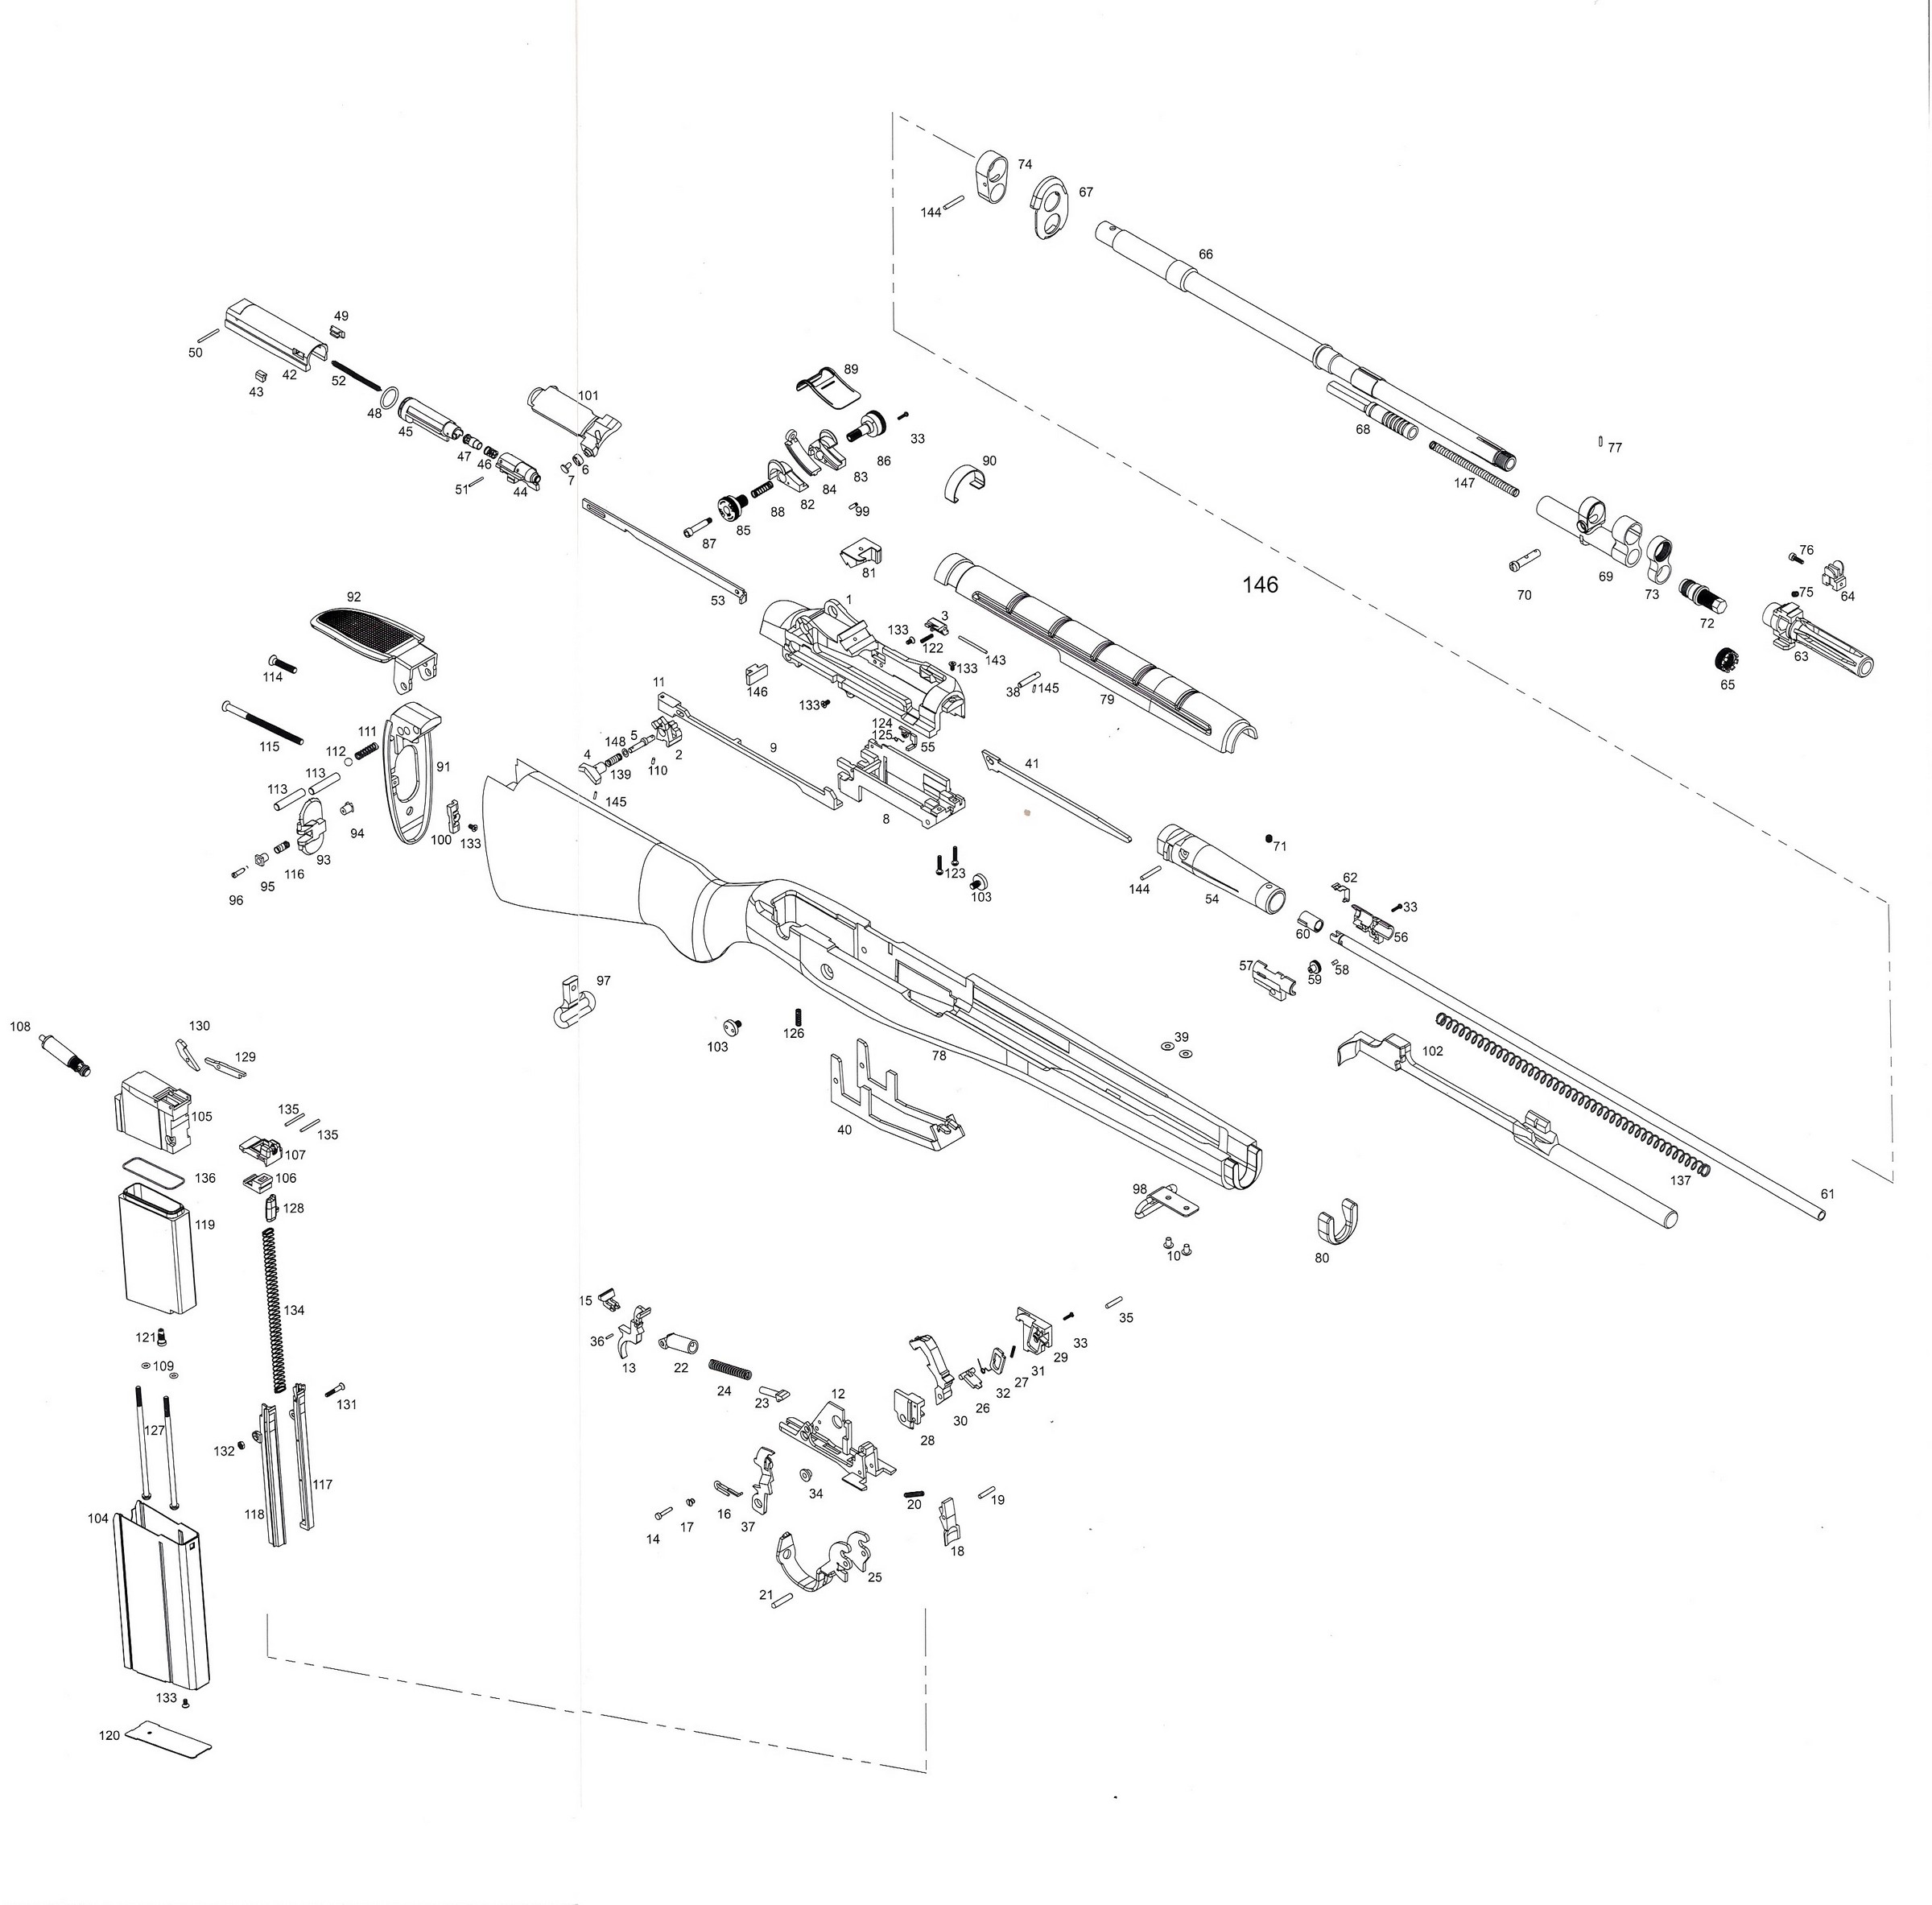 M16a1 Parts Diagram Exploded